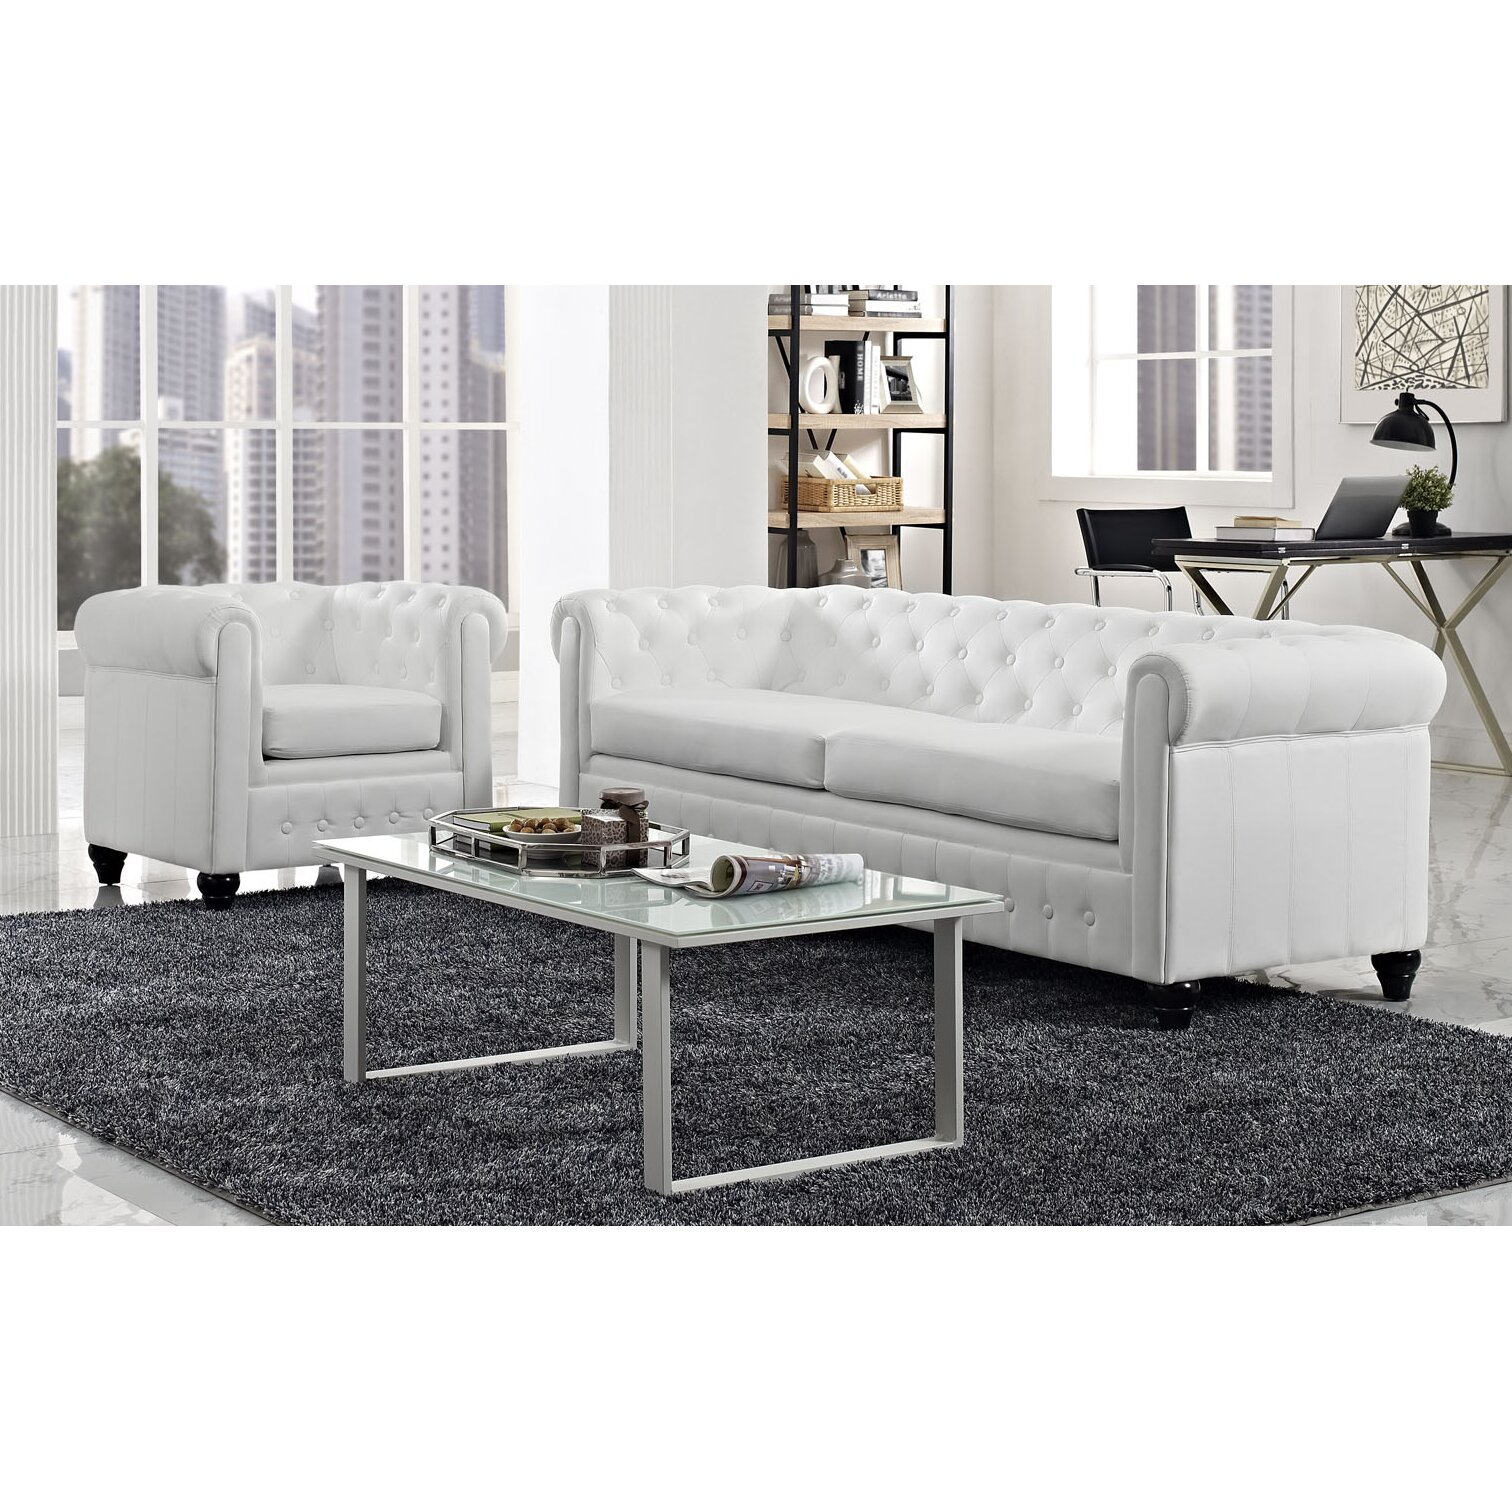 Modway earl 2 piece living room set wayfair for 2 piece living room set